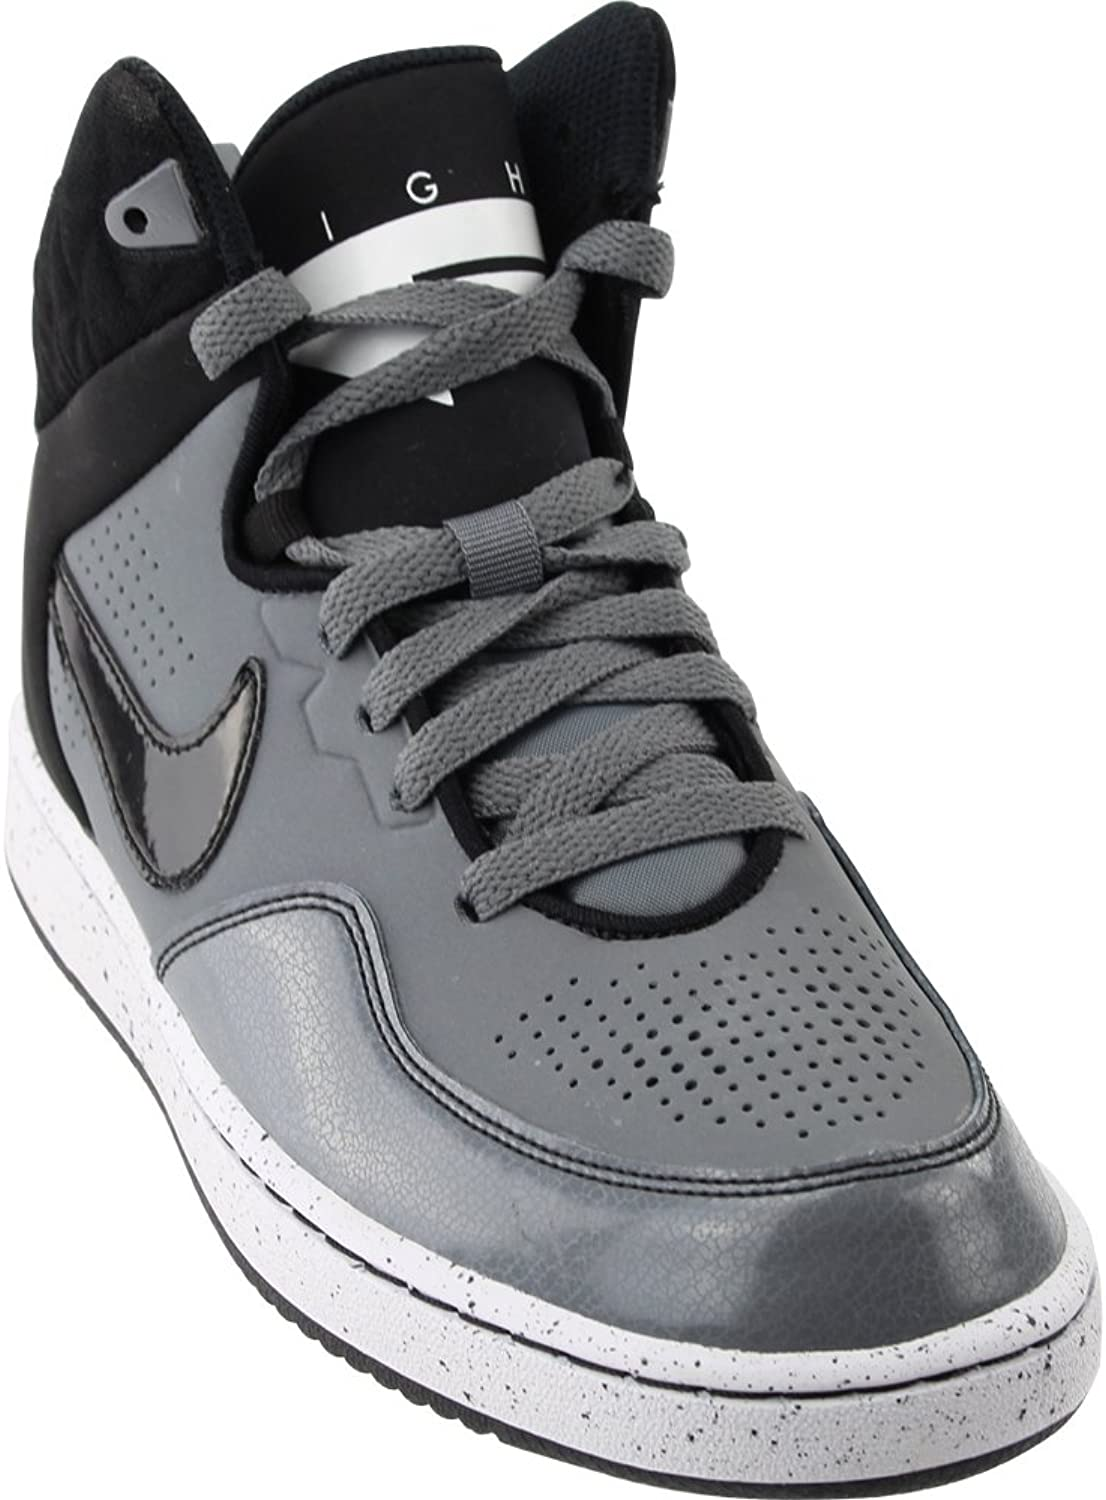 Nike First Flight GS Women's Sports shoes Grey Leather 725132